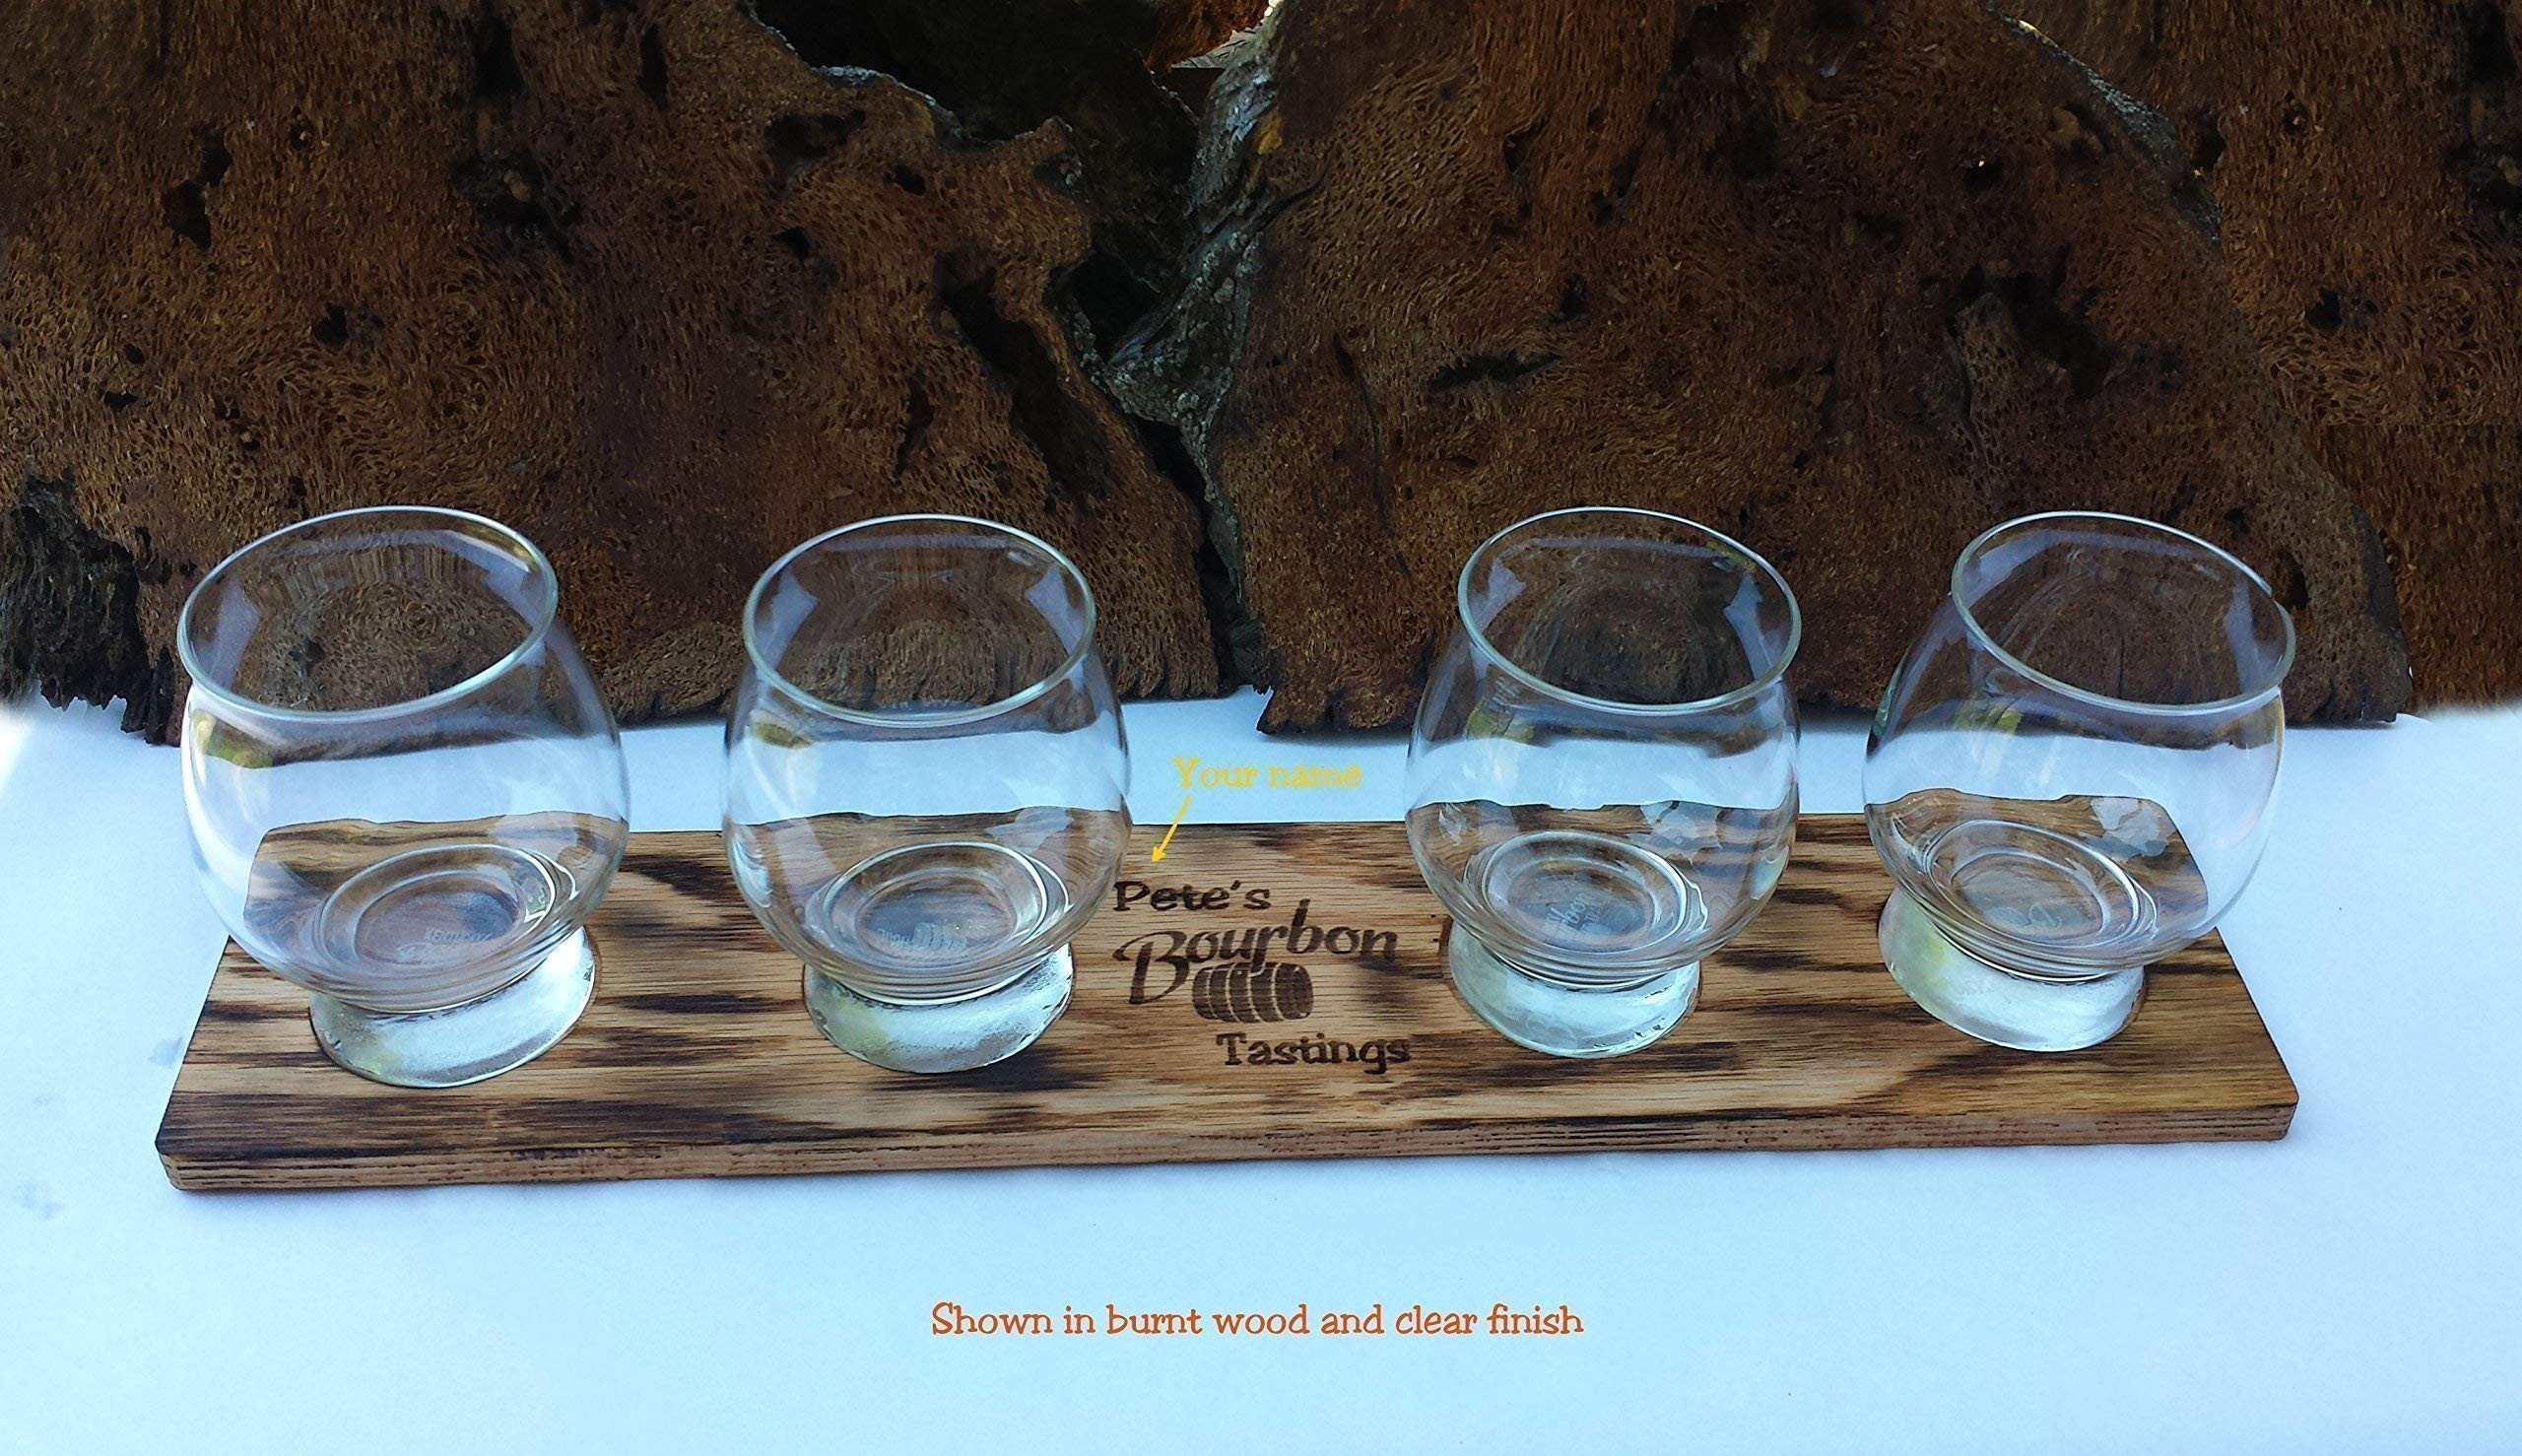 Laser Engraved Personalized Oak Bourbon Tasting Tray with glasses by Precision Wood Carving (Image #3)